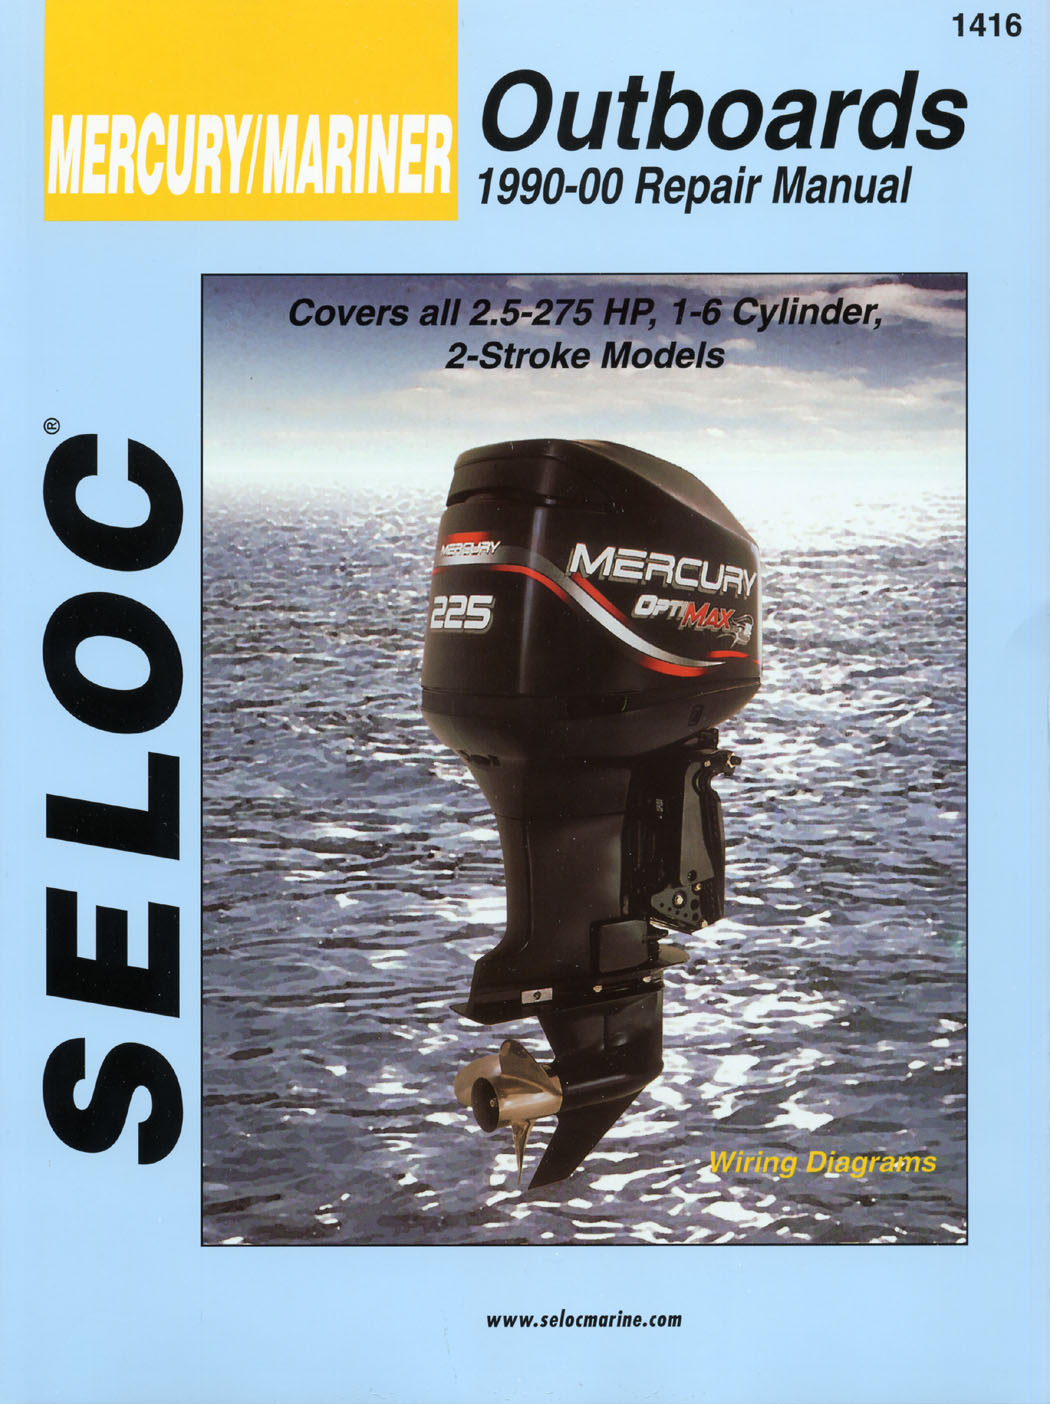 hight resolution of mercury mariner outboards 2 5 275 hp 1990 2000 repair service manual